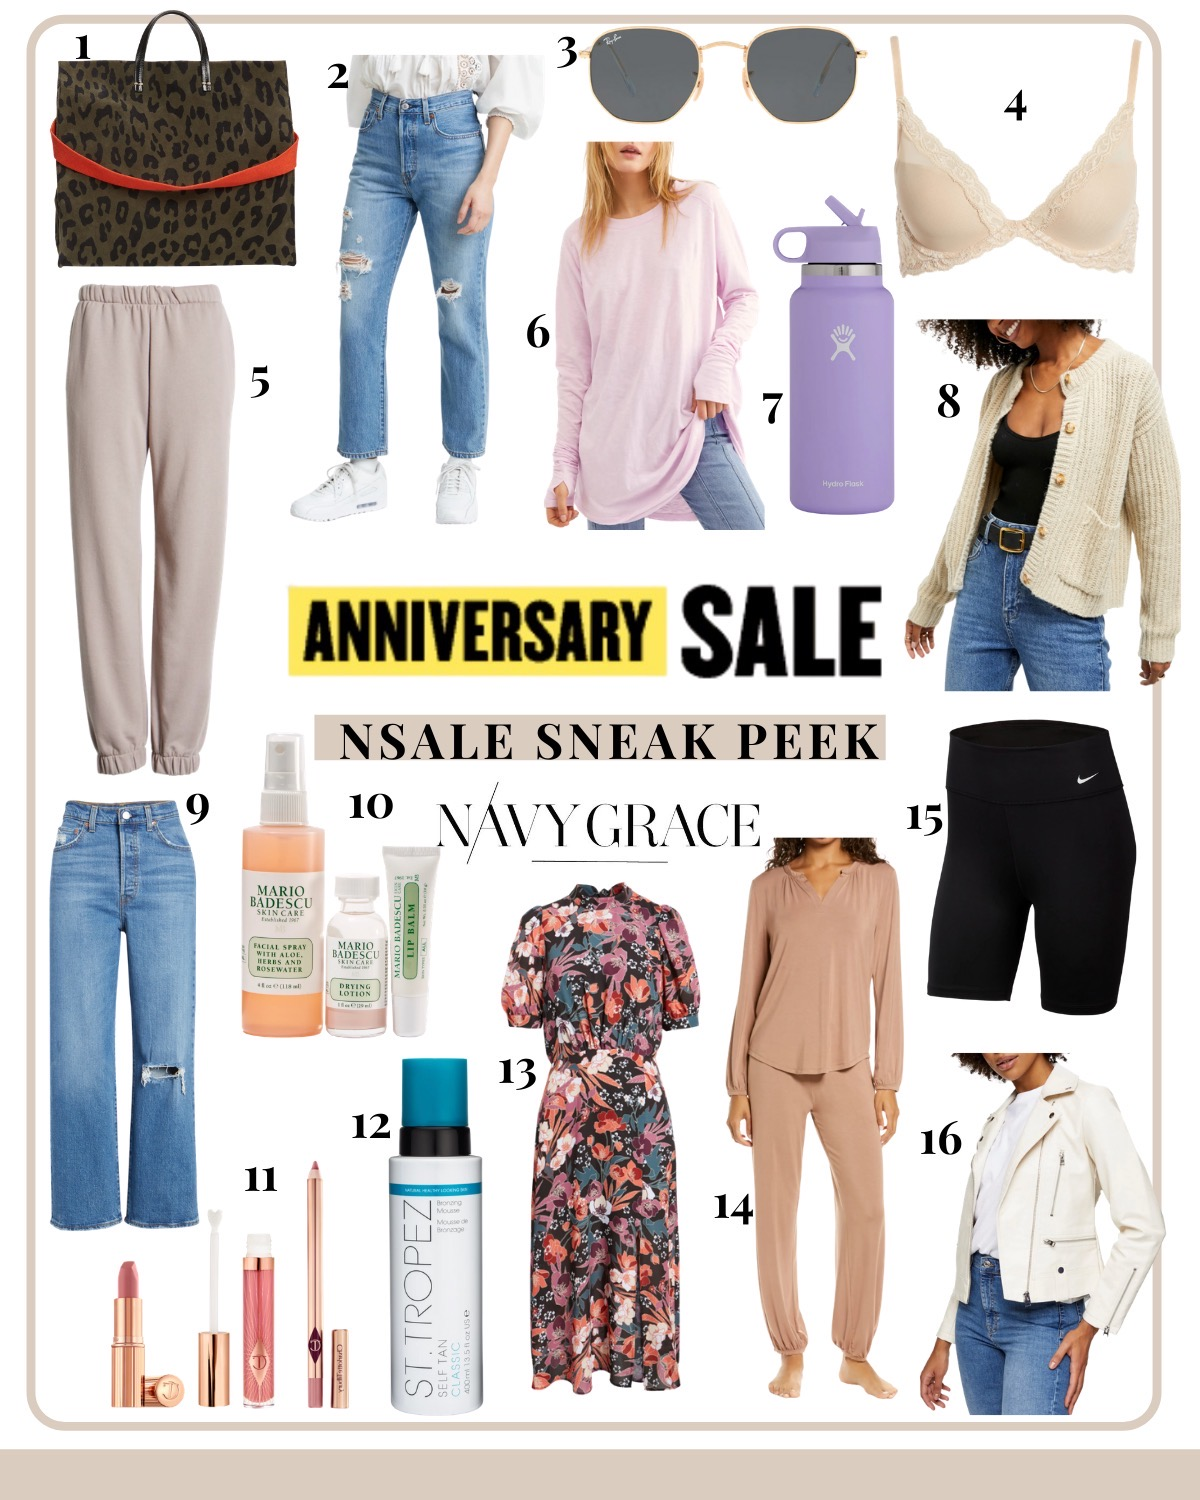 Nordstrom Anniversary Sale by popular San Diego fashion blog, Navy Grace: collage image of a Clare V. Leopard Bag, Levi's 501 Jeans, Rayban Sunglasses, Natori Bra, Cozy Jogger Sweatpants, Extra Long Cotton Top, Hydro Flask 32 Oz Bottle, Cream Stitch Cardigan, Levi's Ribcage Denim, Mario Bandescu Essential Set, Pillow Talk Lip Set, St. Tropez Self Tanner, Floral Puff Sleeve Dress, Two Piece Lounge Set, Nike Biker Shorts, and Faux Leather Biker Jacket.